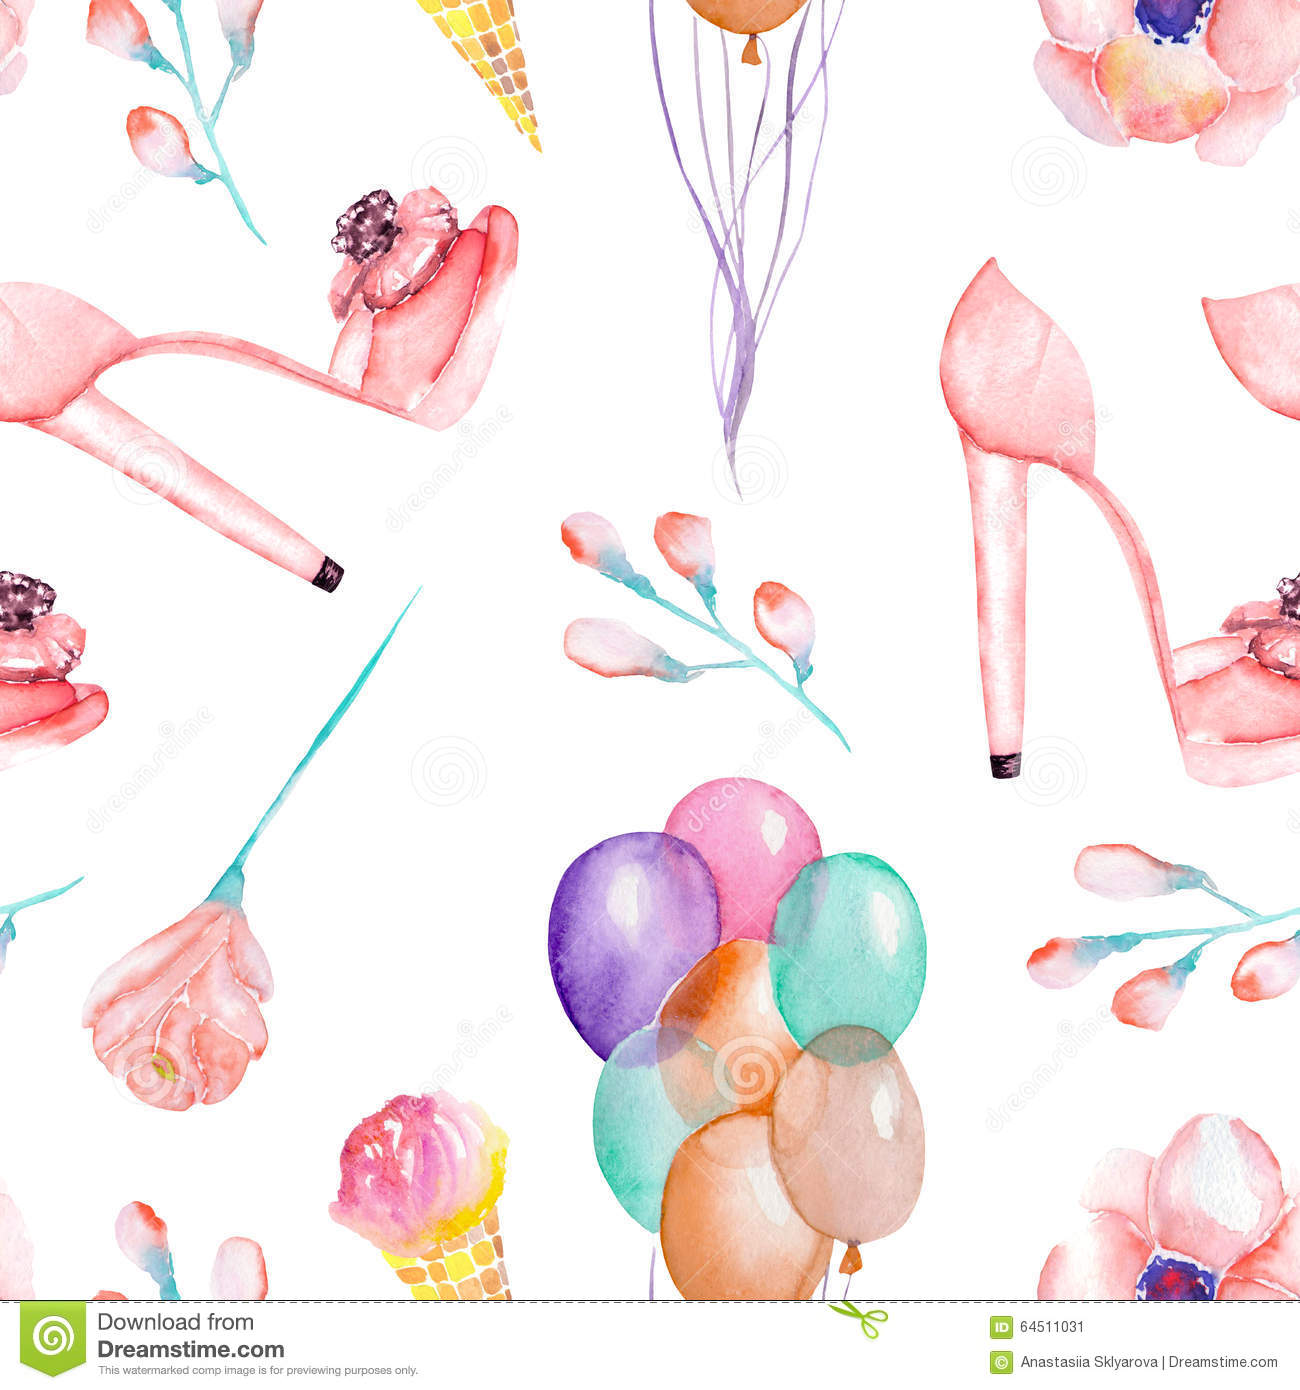 Seamless Pattern With Hand Drawn Watercolor Ice Cream: A Seamless Watercolor Pattern With The Women's Romantic